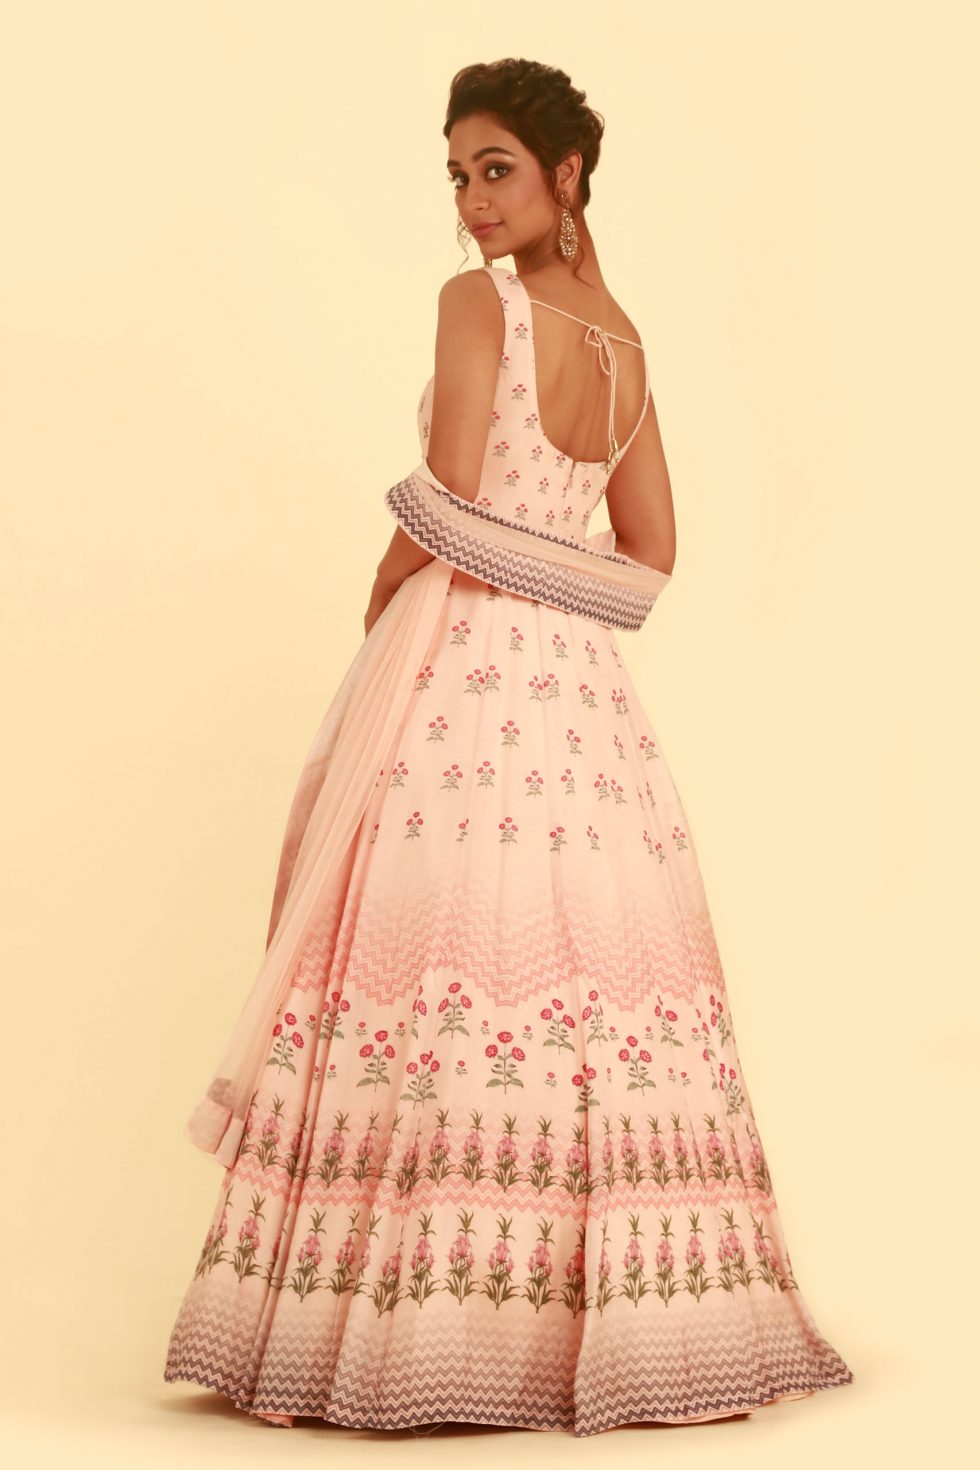 Blush pink printed Anarkali gown set with matching dupatta and gold embellishments